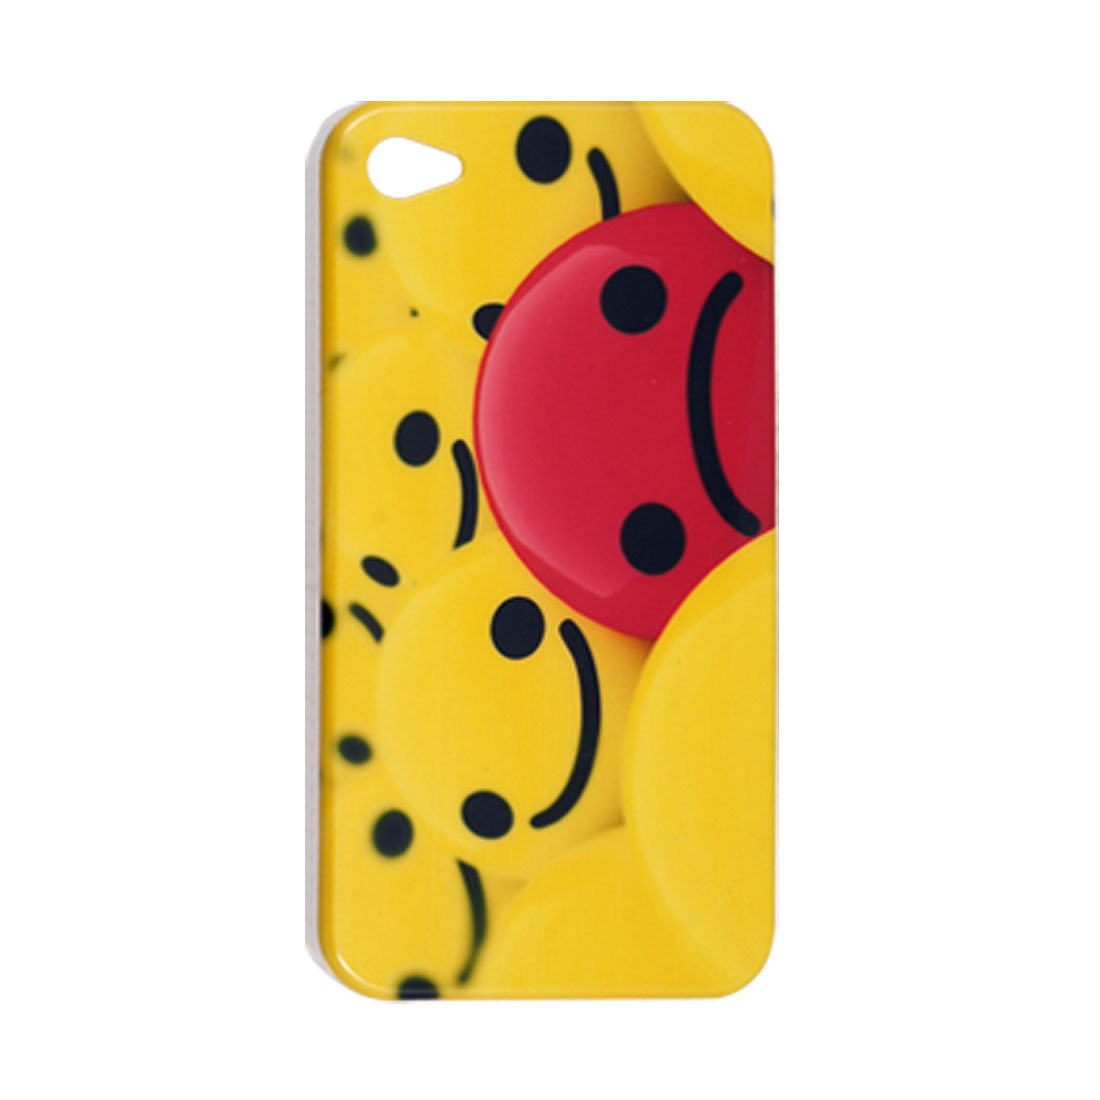 Smile Sad Face IMD Pattern Plastic Back Case for iPhone 4 4G